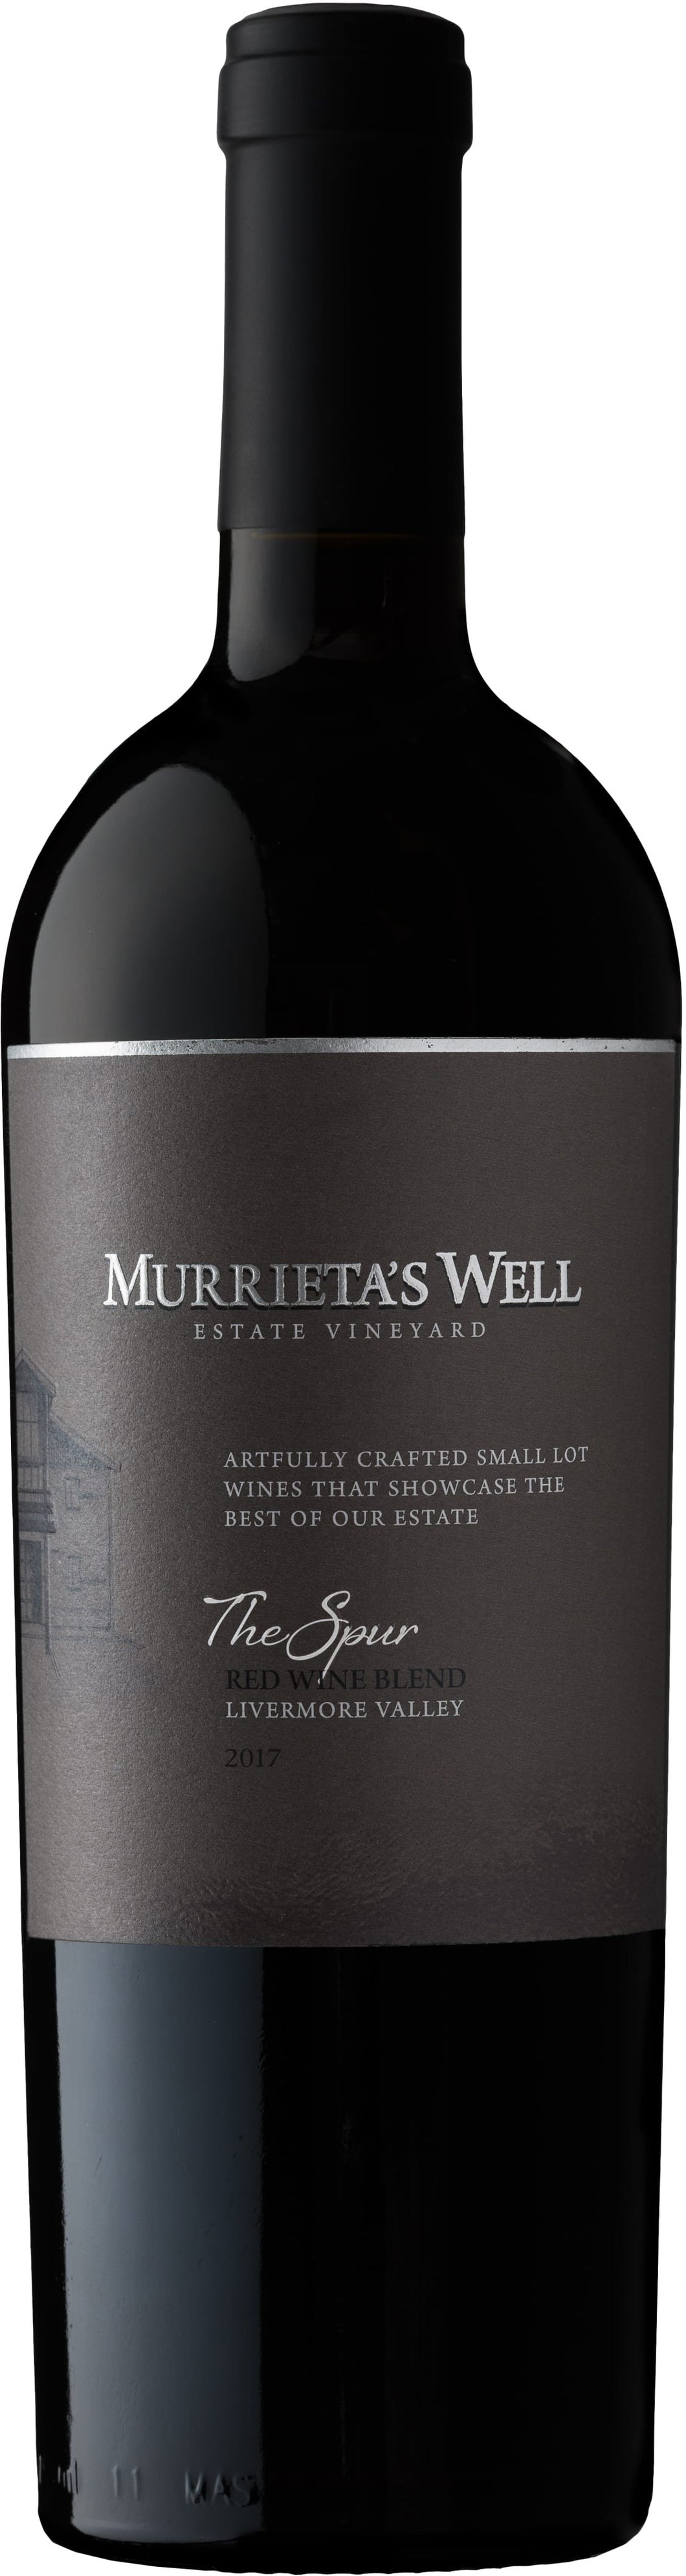 Murrieta's Well The Spur Red 2017